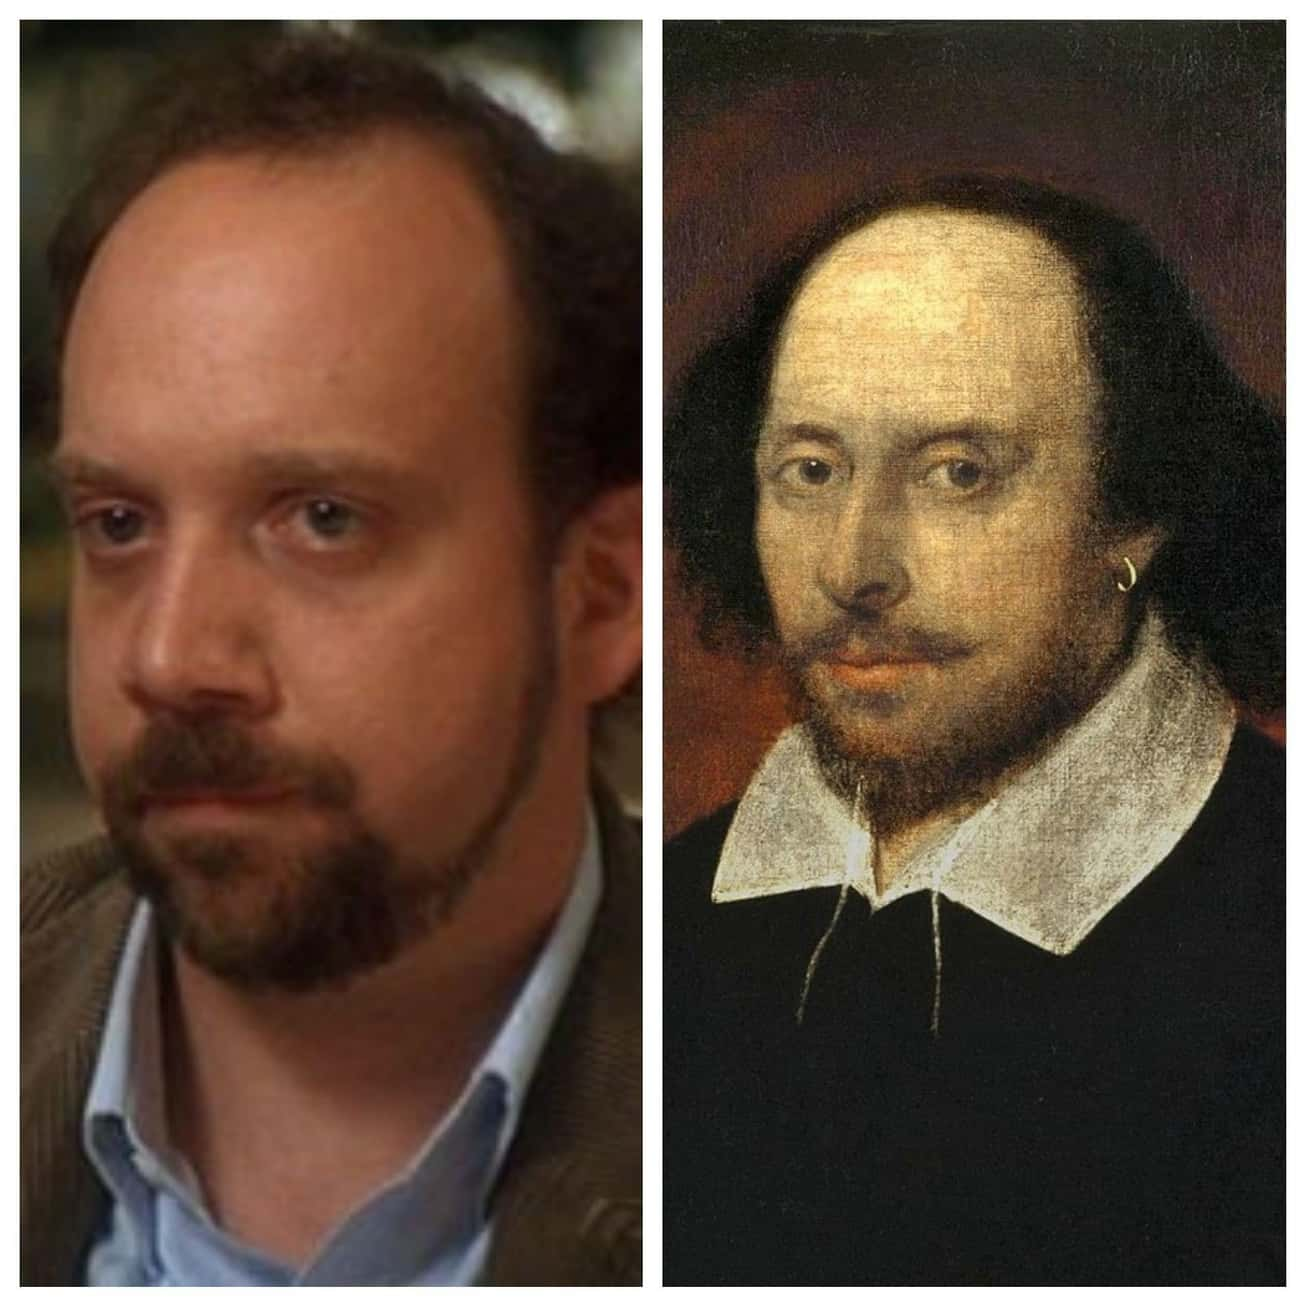 Paul Giamatti As William Shake is listed (or ranked) 3 on the list Historical Figures And The Actors Who Should Portray Them In A Biopic